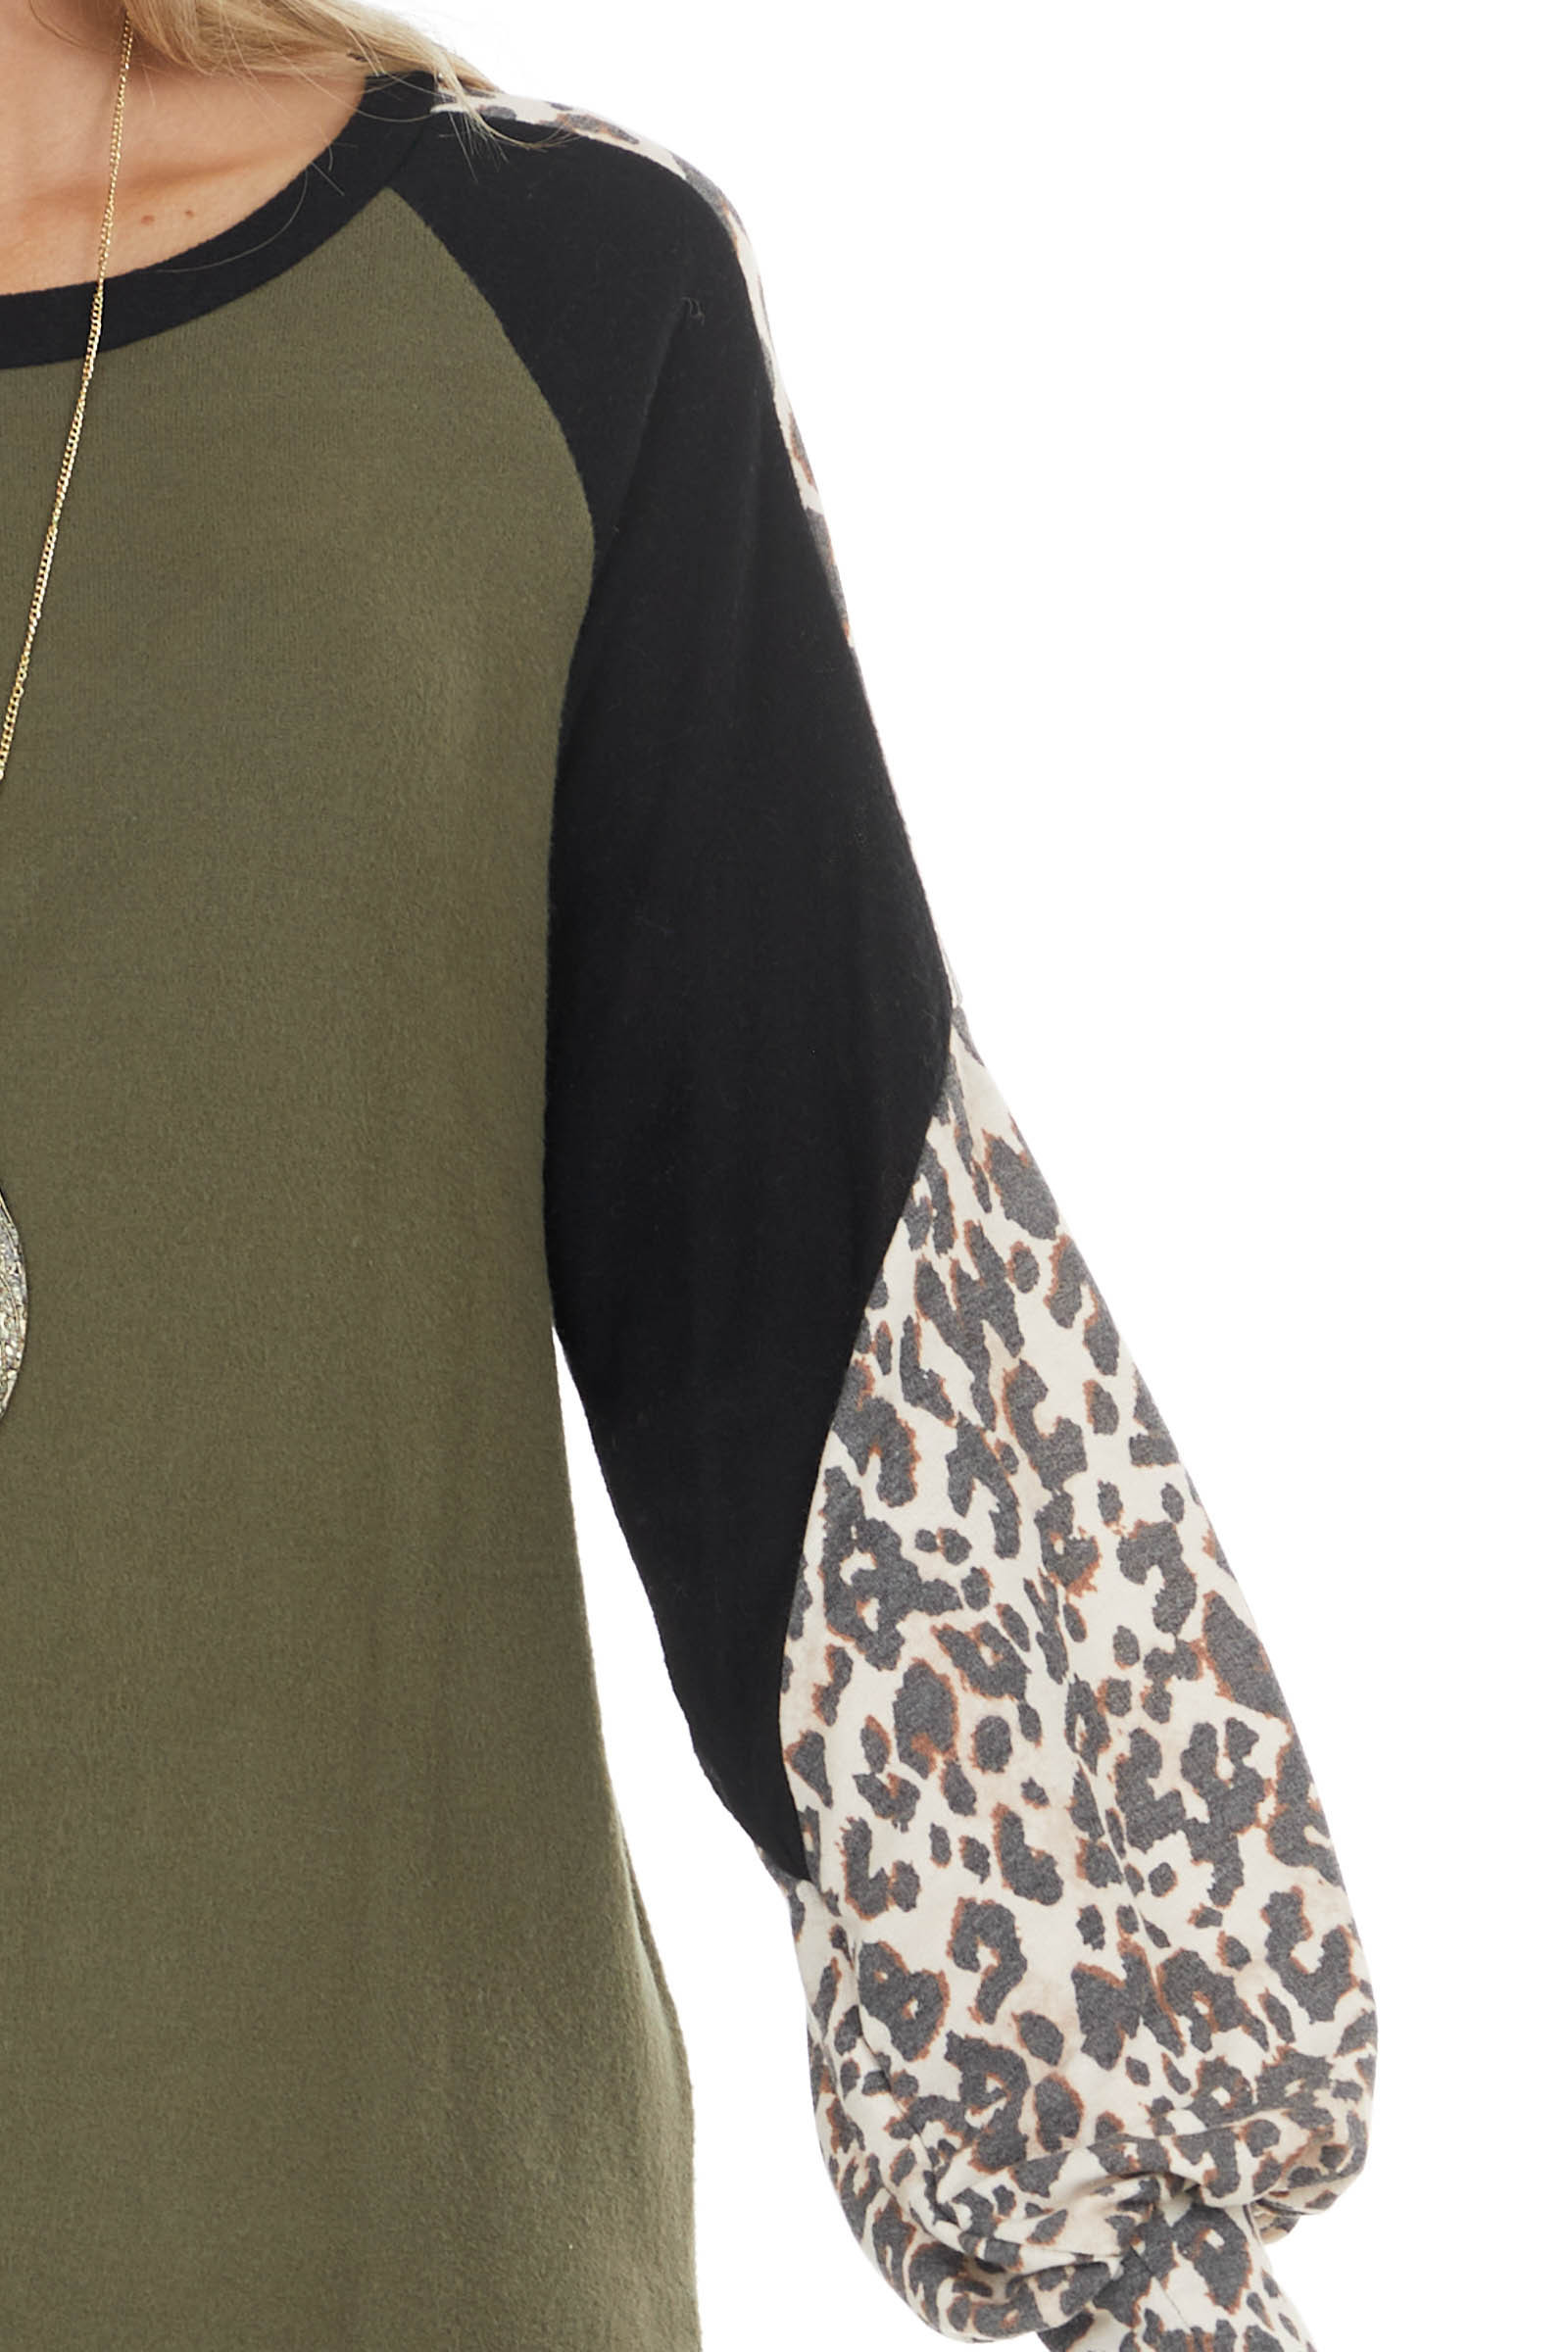 Olive Leopard Print Colorblock Long Sleeve Loose Fit Top